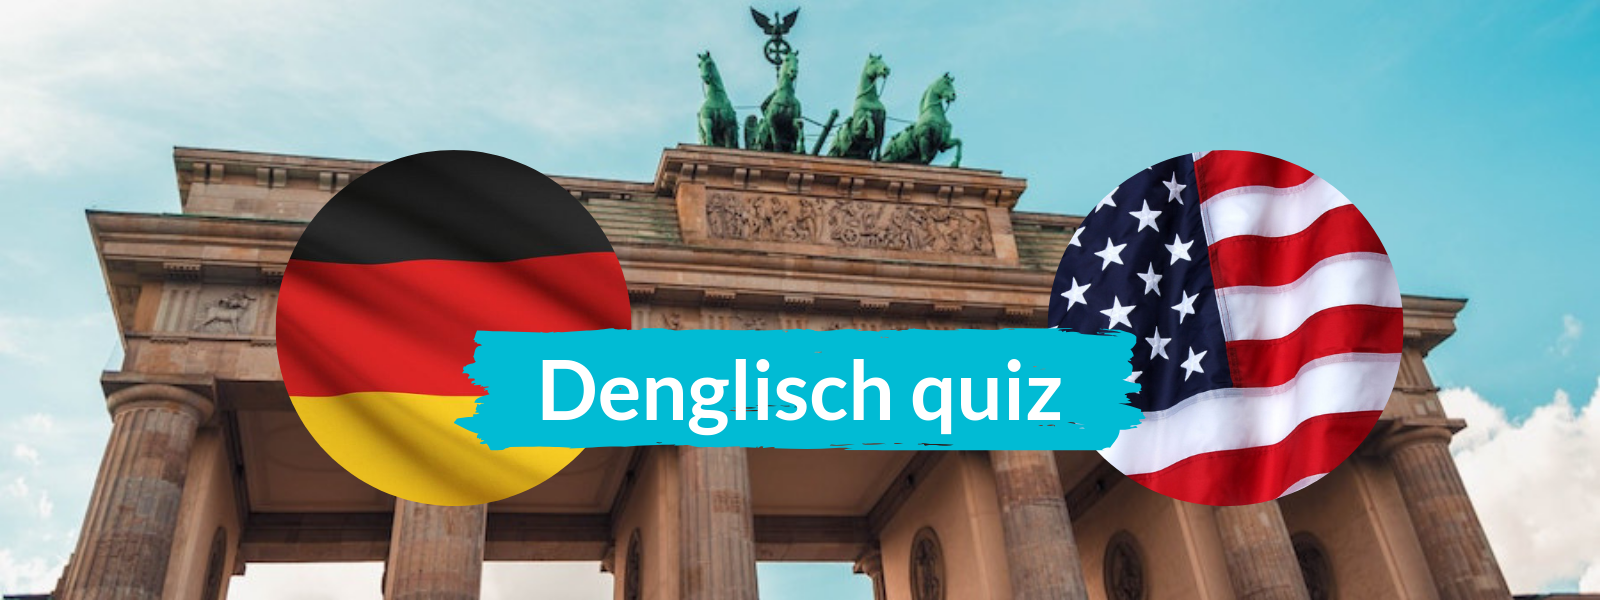 Common mistakes Germans make in English Denglisch quiz